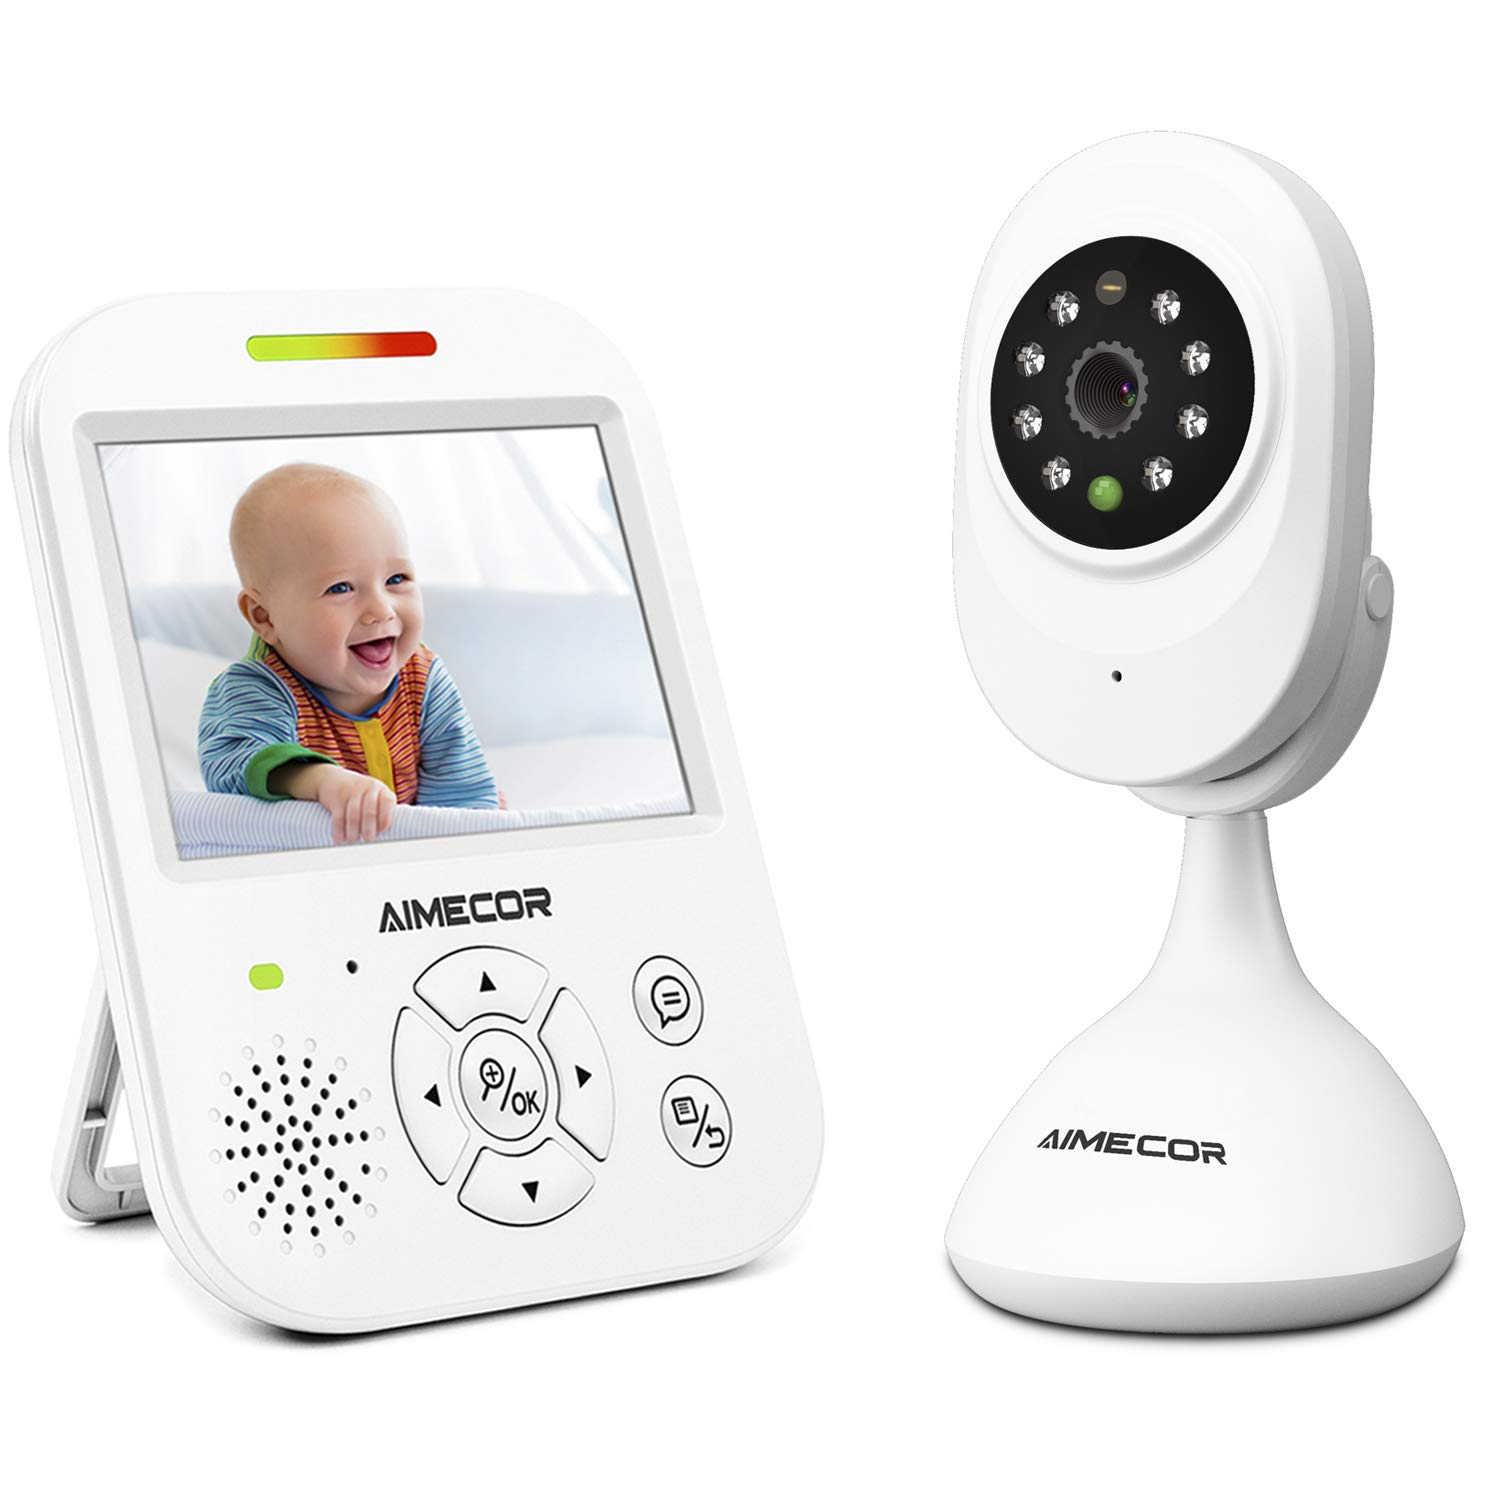 Video Baby Monitor with Camera - 3.5 inch IPS Display, HD Night Vision Camera, 960ft Transmission Range, Temperature Monitoring,Include Compatible Mount Shelf AIMECOR